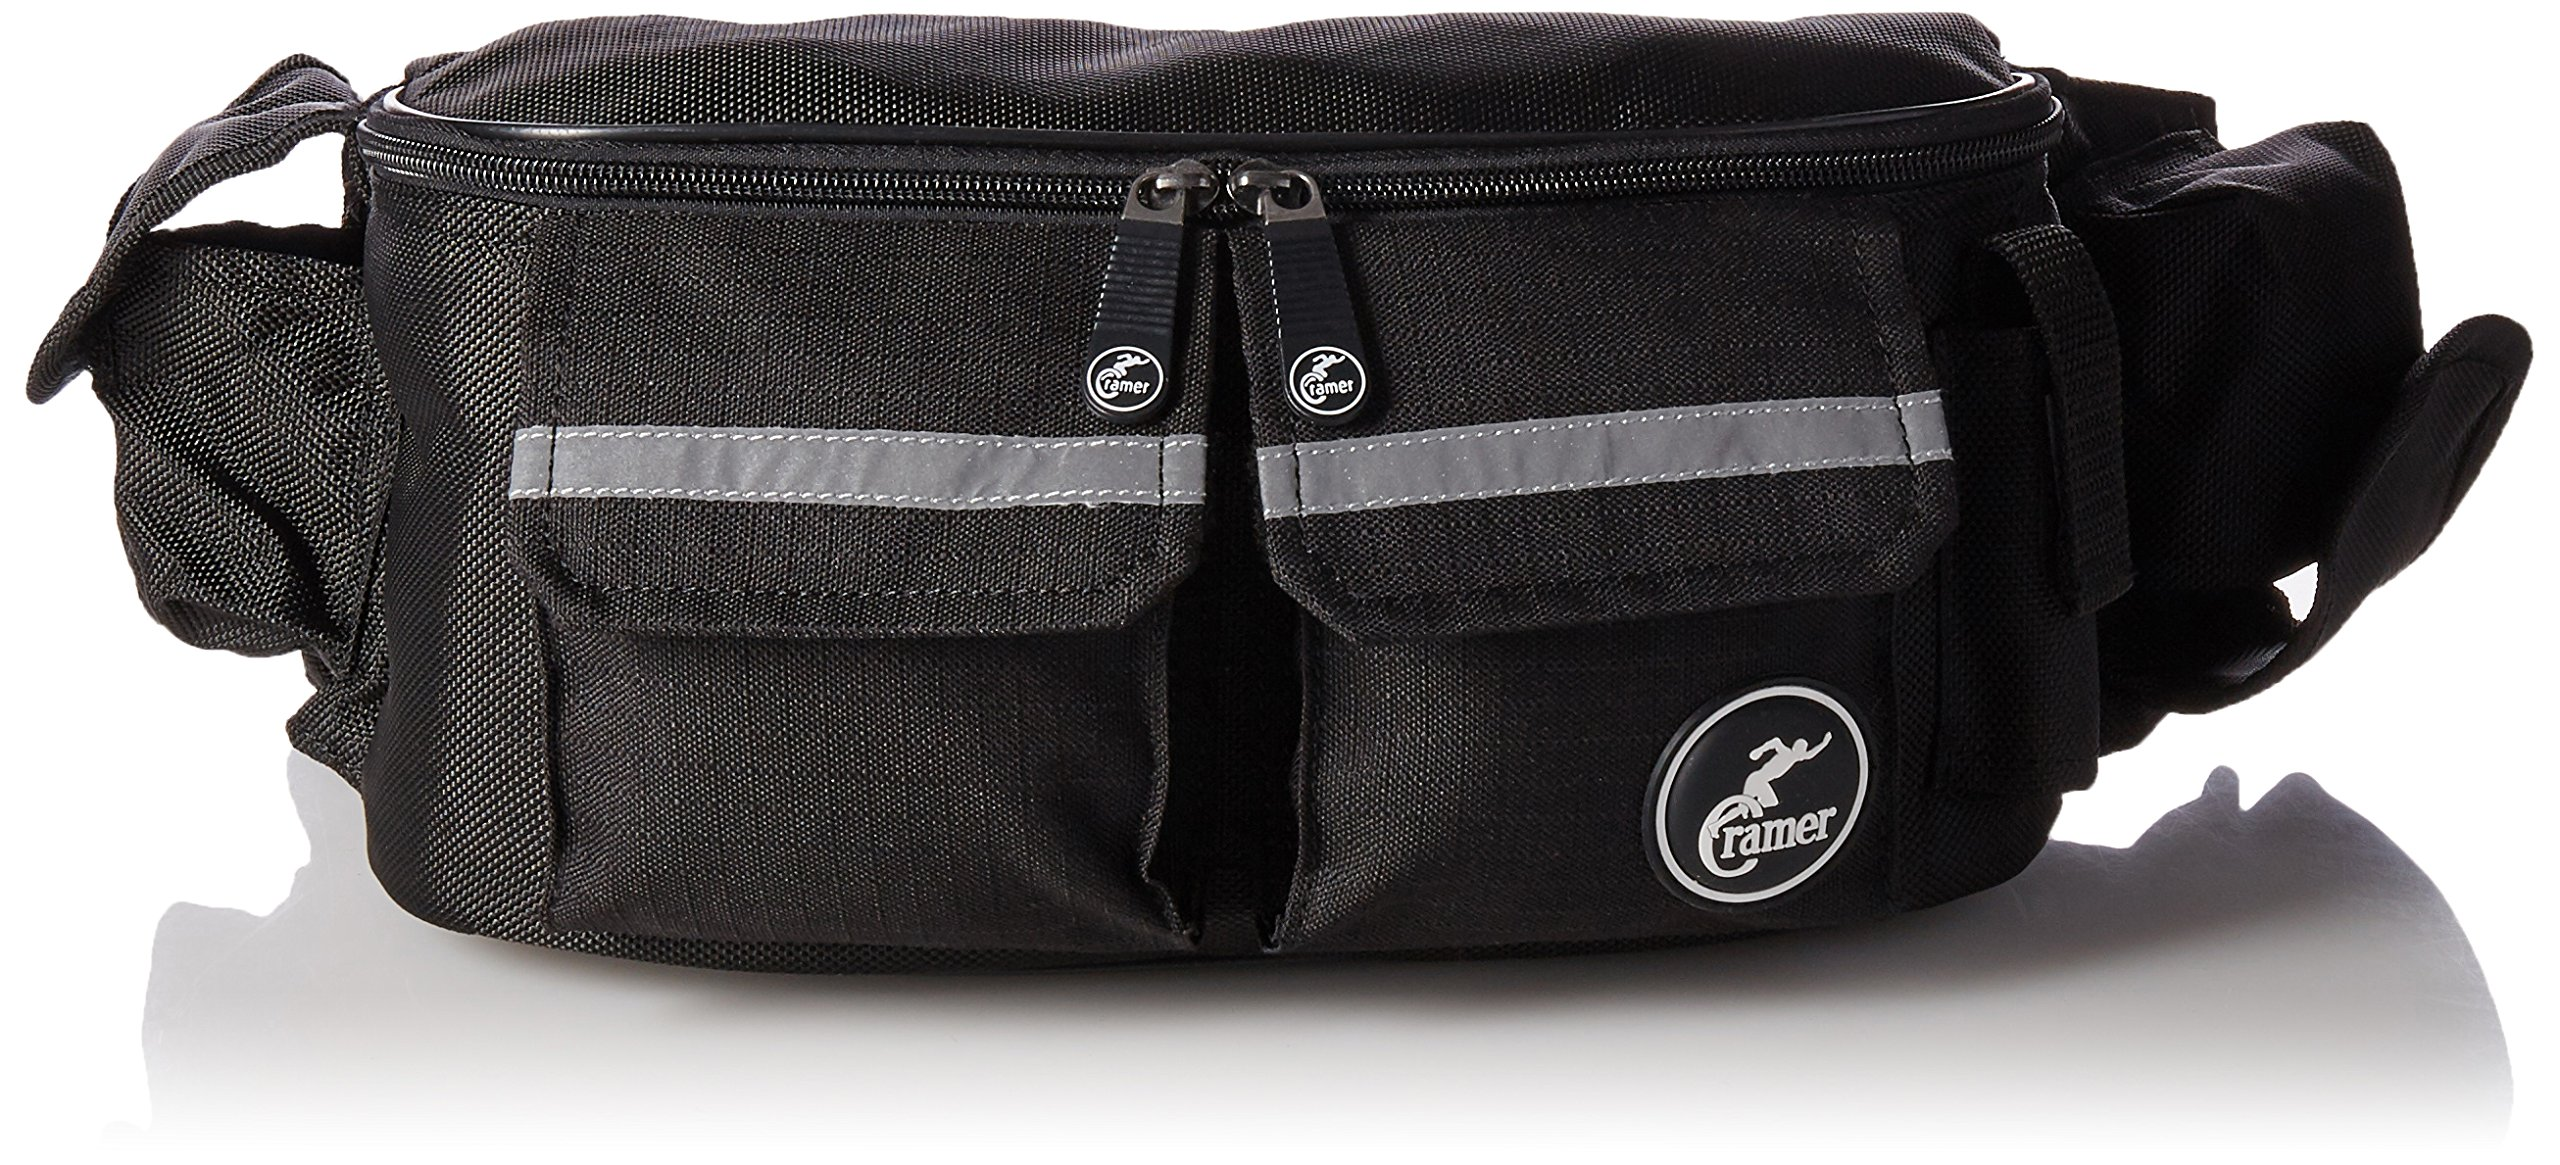 Cramer Deluxe Fanny Pack for Athletic Trainers, Complete Athletic Training Kit Waist Bag With Quick Access Pockets, Lightweight Option Carries AT Essential Supplies, Including Tape and Scissors, Empty by Cramer